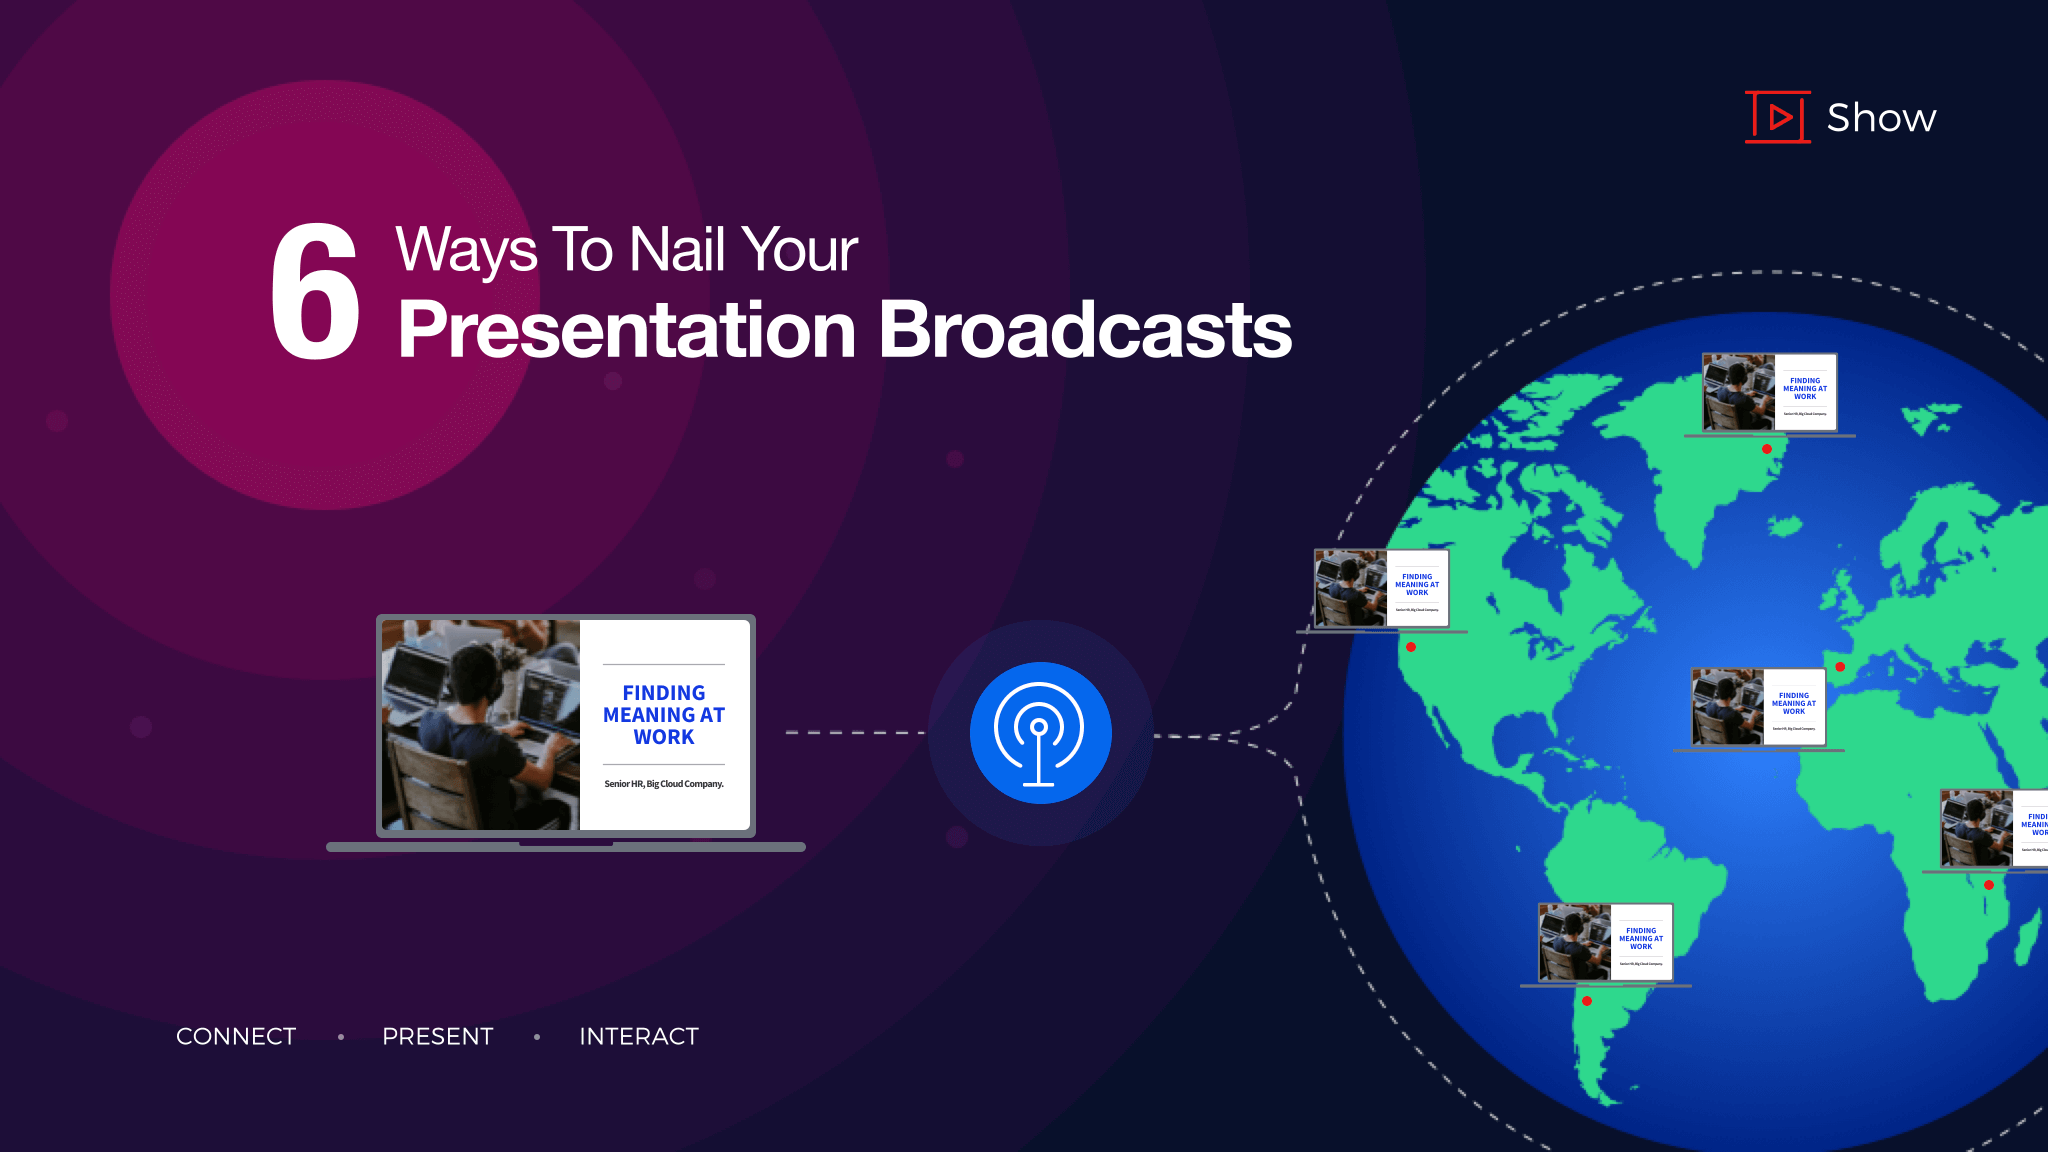 6 killer tips to nail your presentation broadcasts